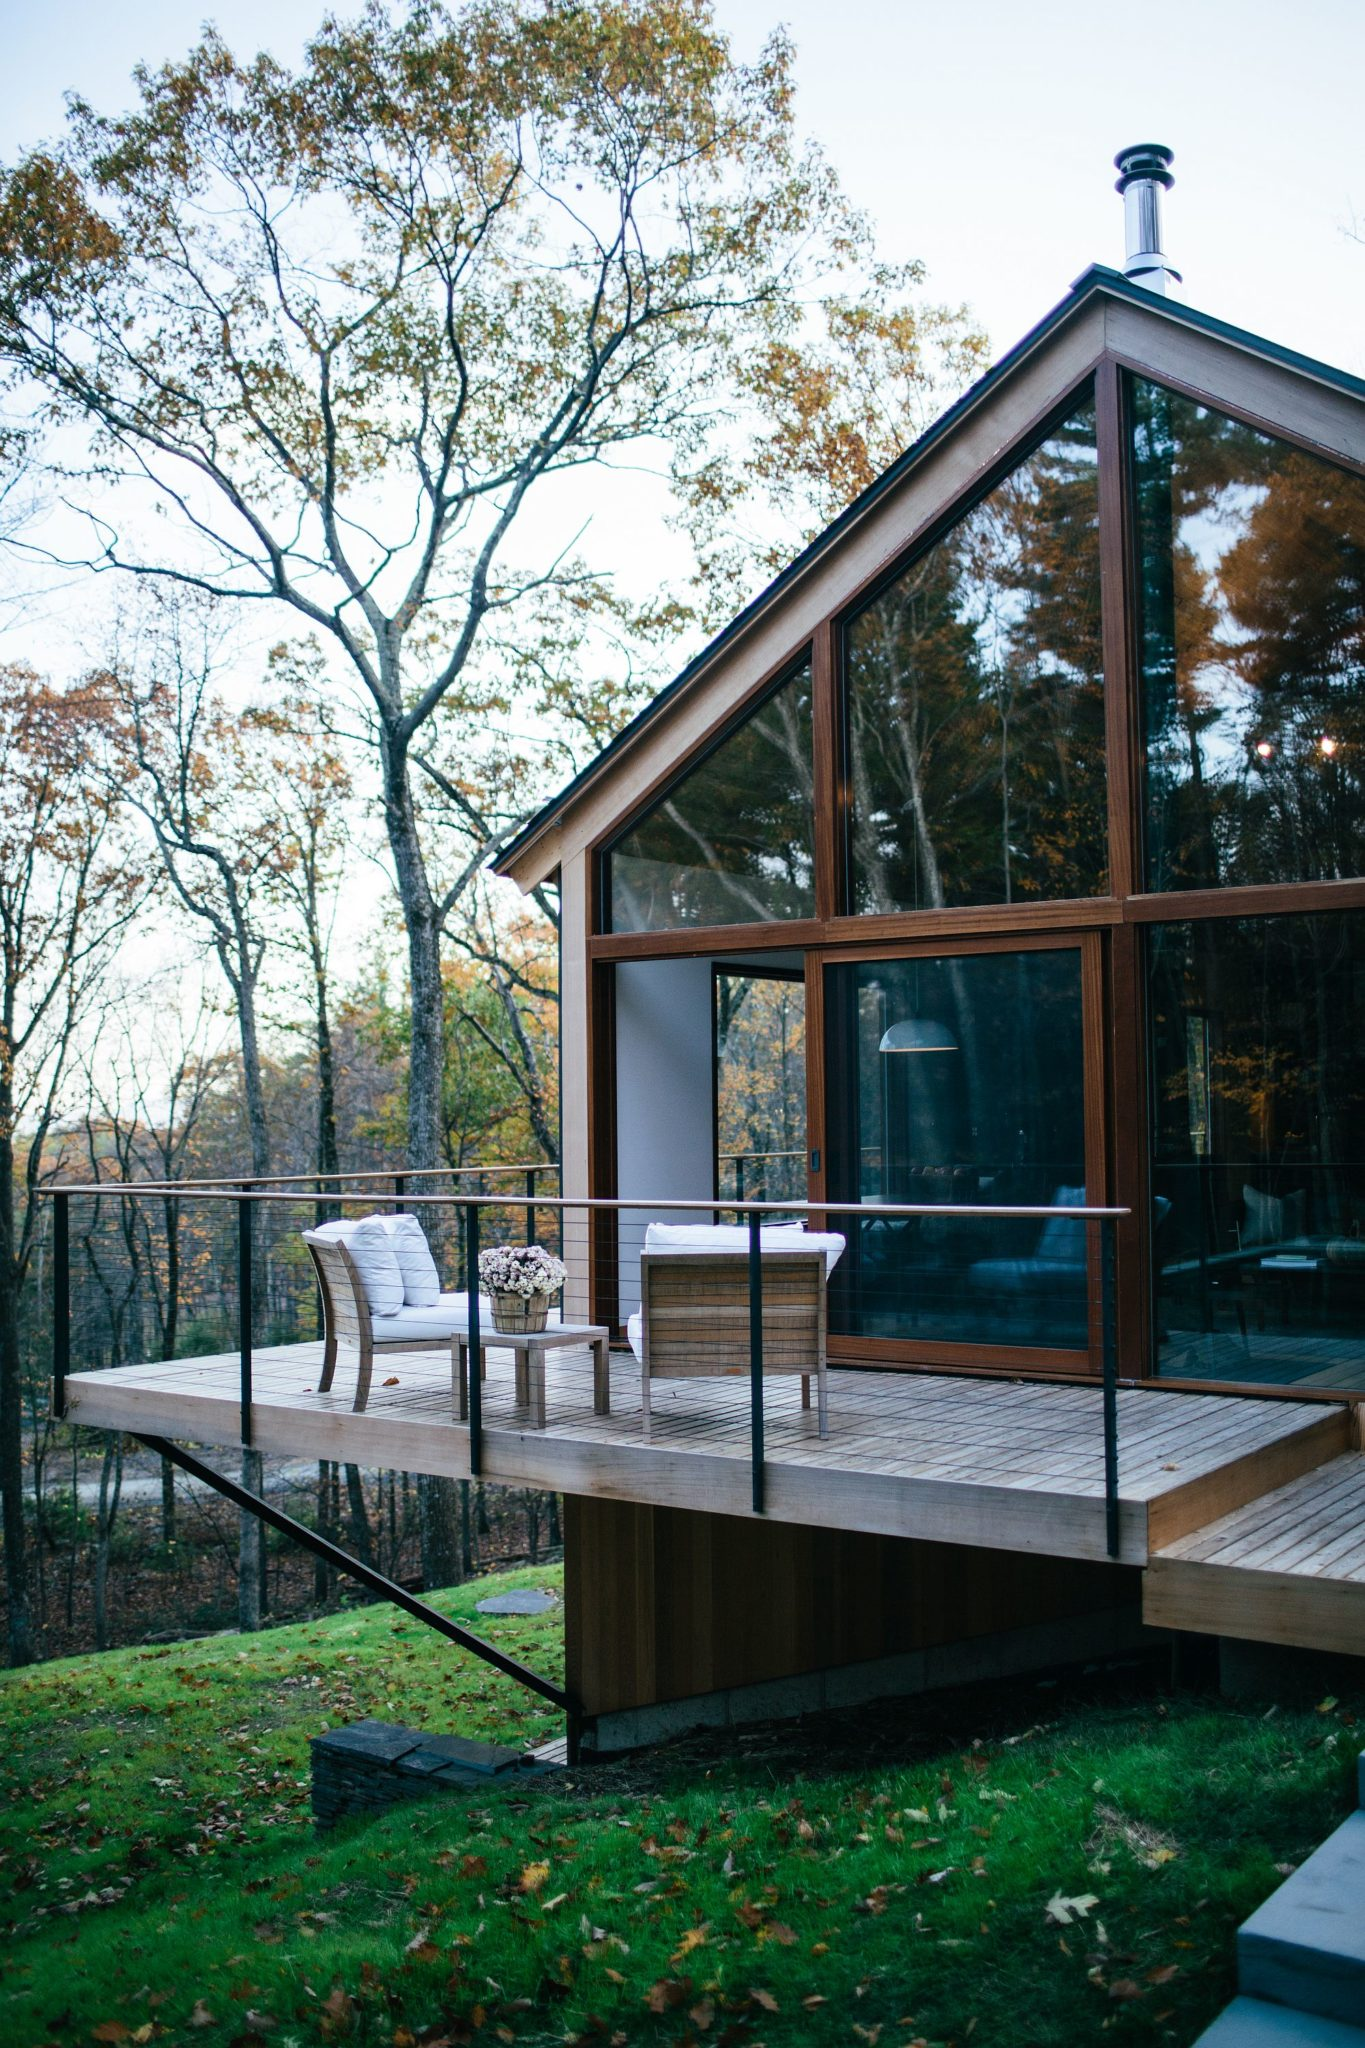 Natural-greenery-surrounds-the-sustainable-cabin